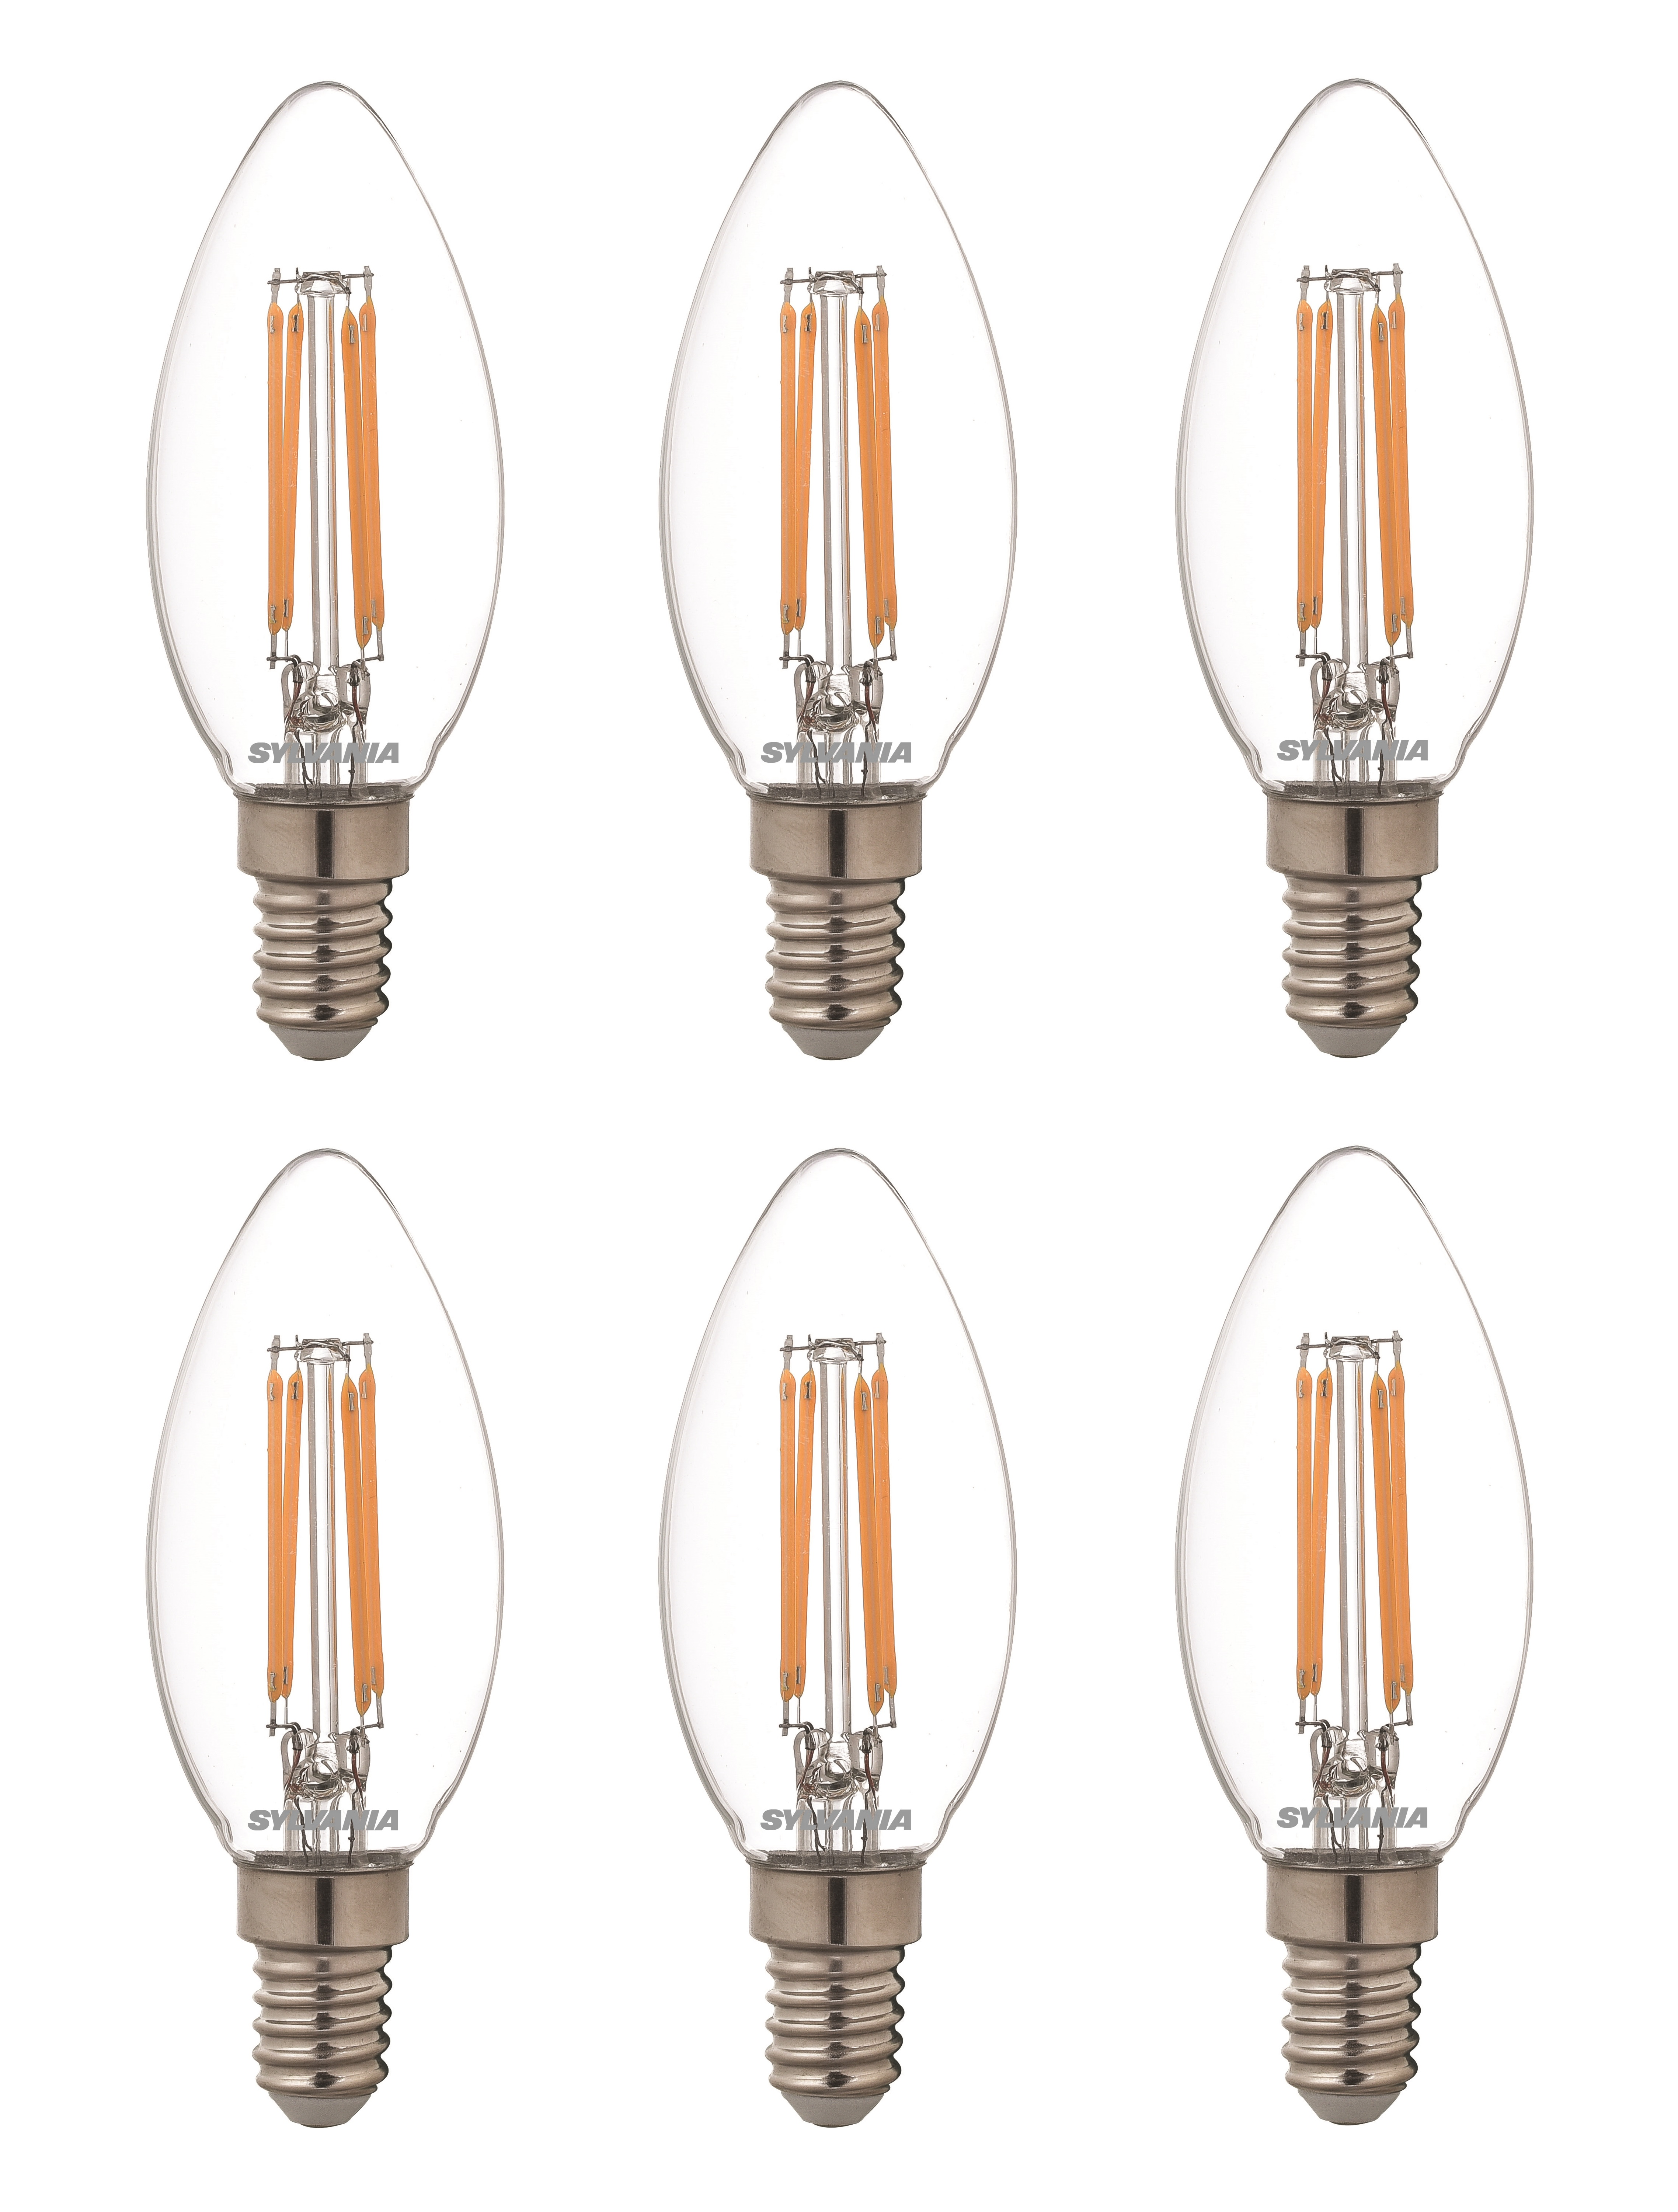 6x Sylvania dimmable LED candle light bulb E14 SES 4.5W = 40W 470lm warm white